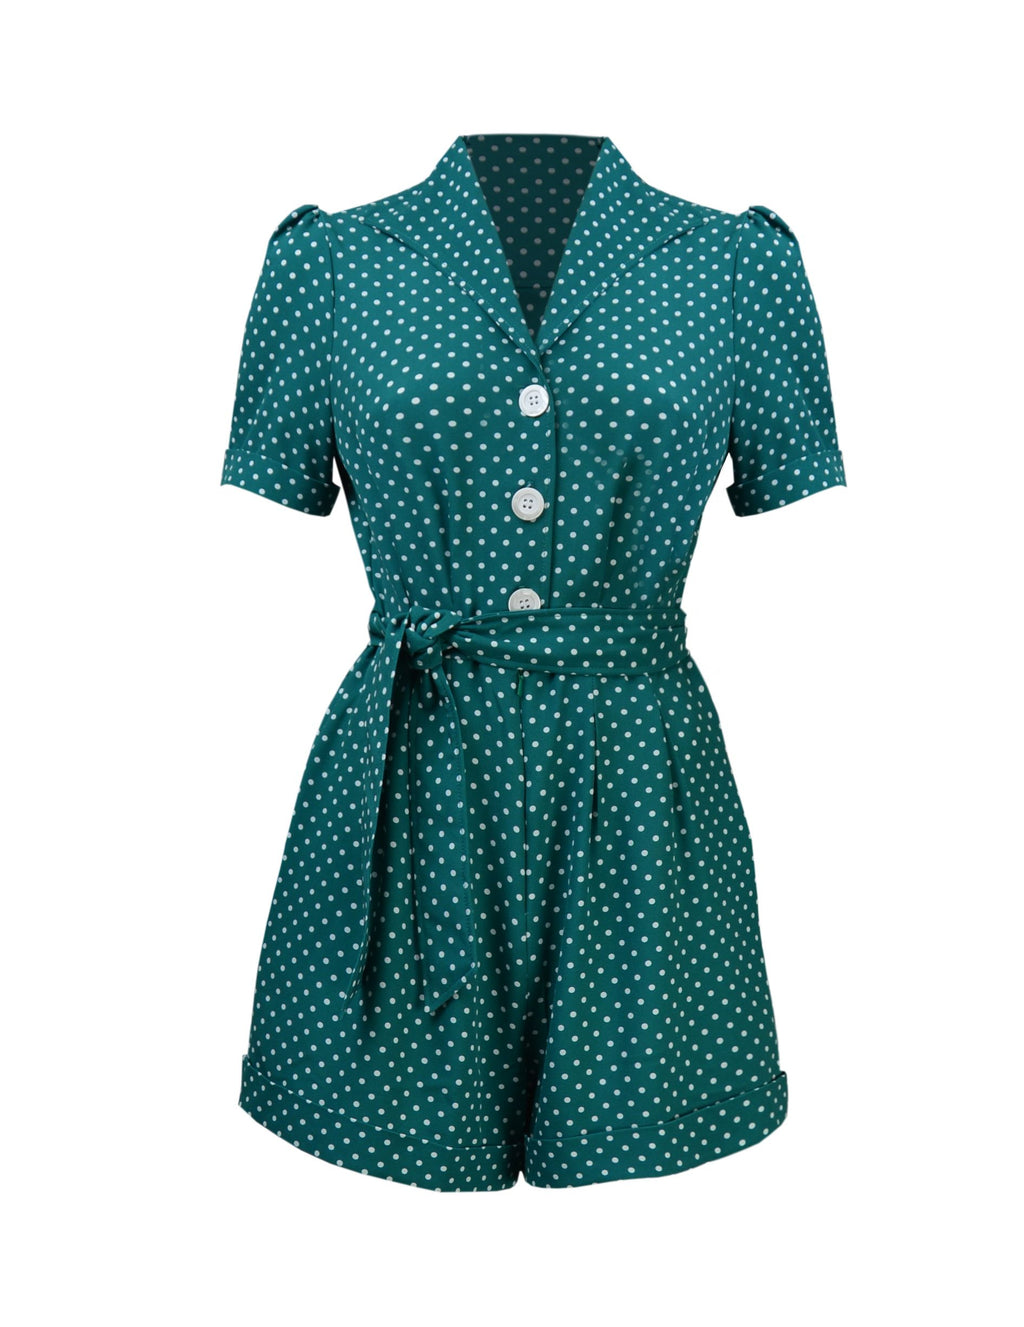 Pretty Playsuit in Polka Dot Green